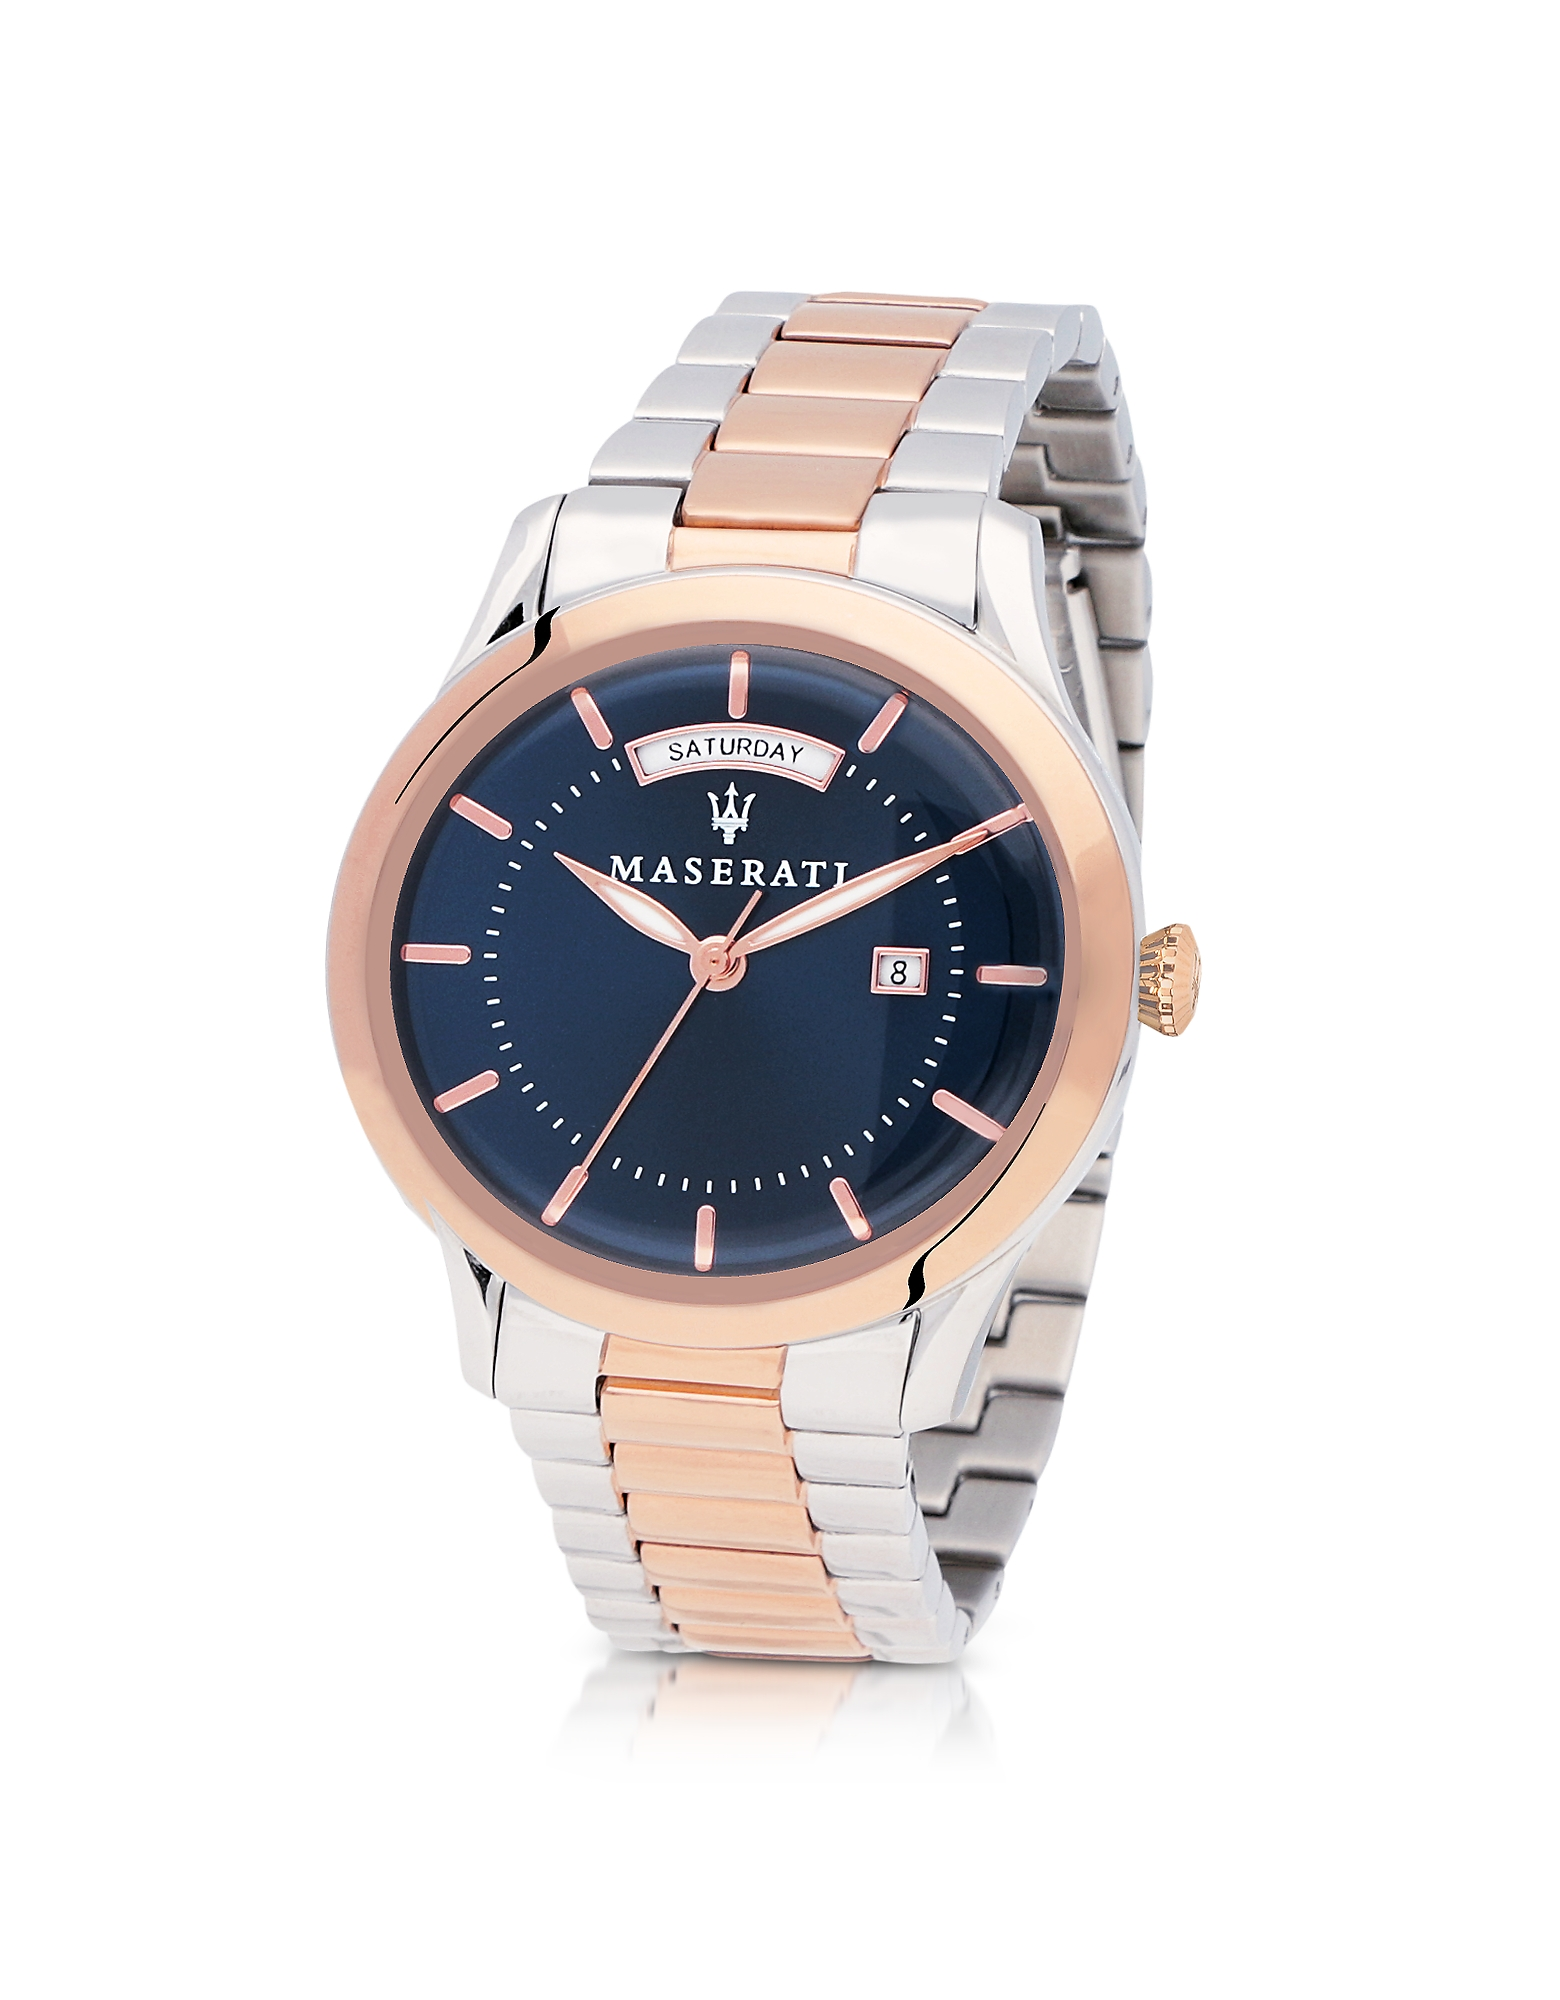 Maserati Men's Watches, Tradizione Two Tone Stainless Steel Men's Bracelet Watch